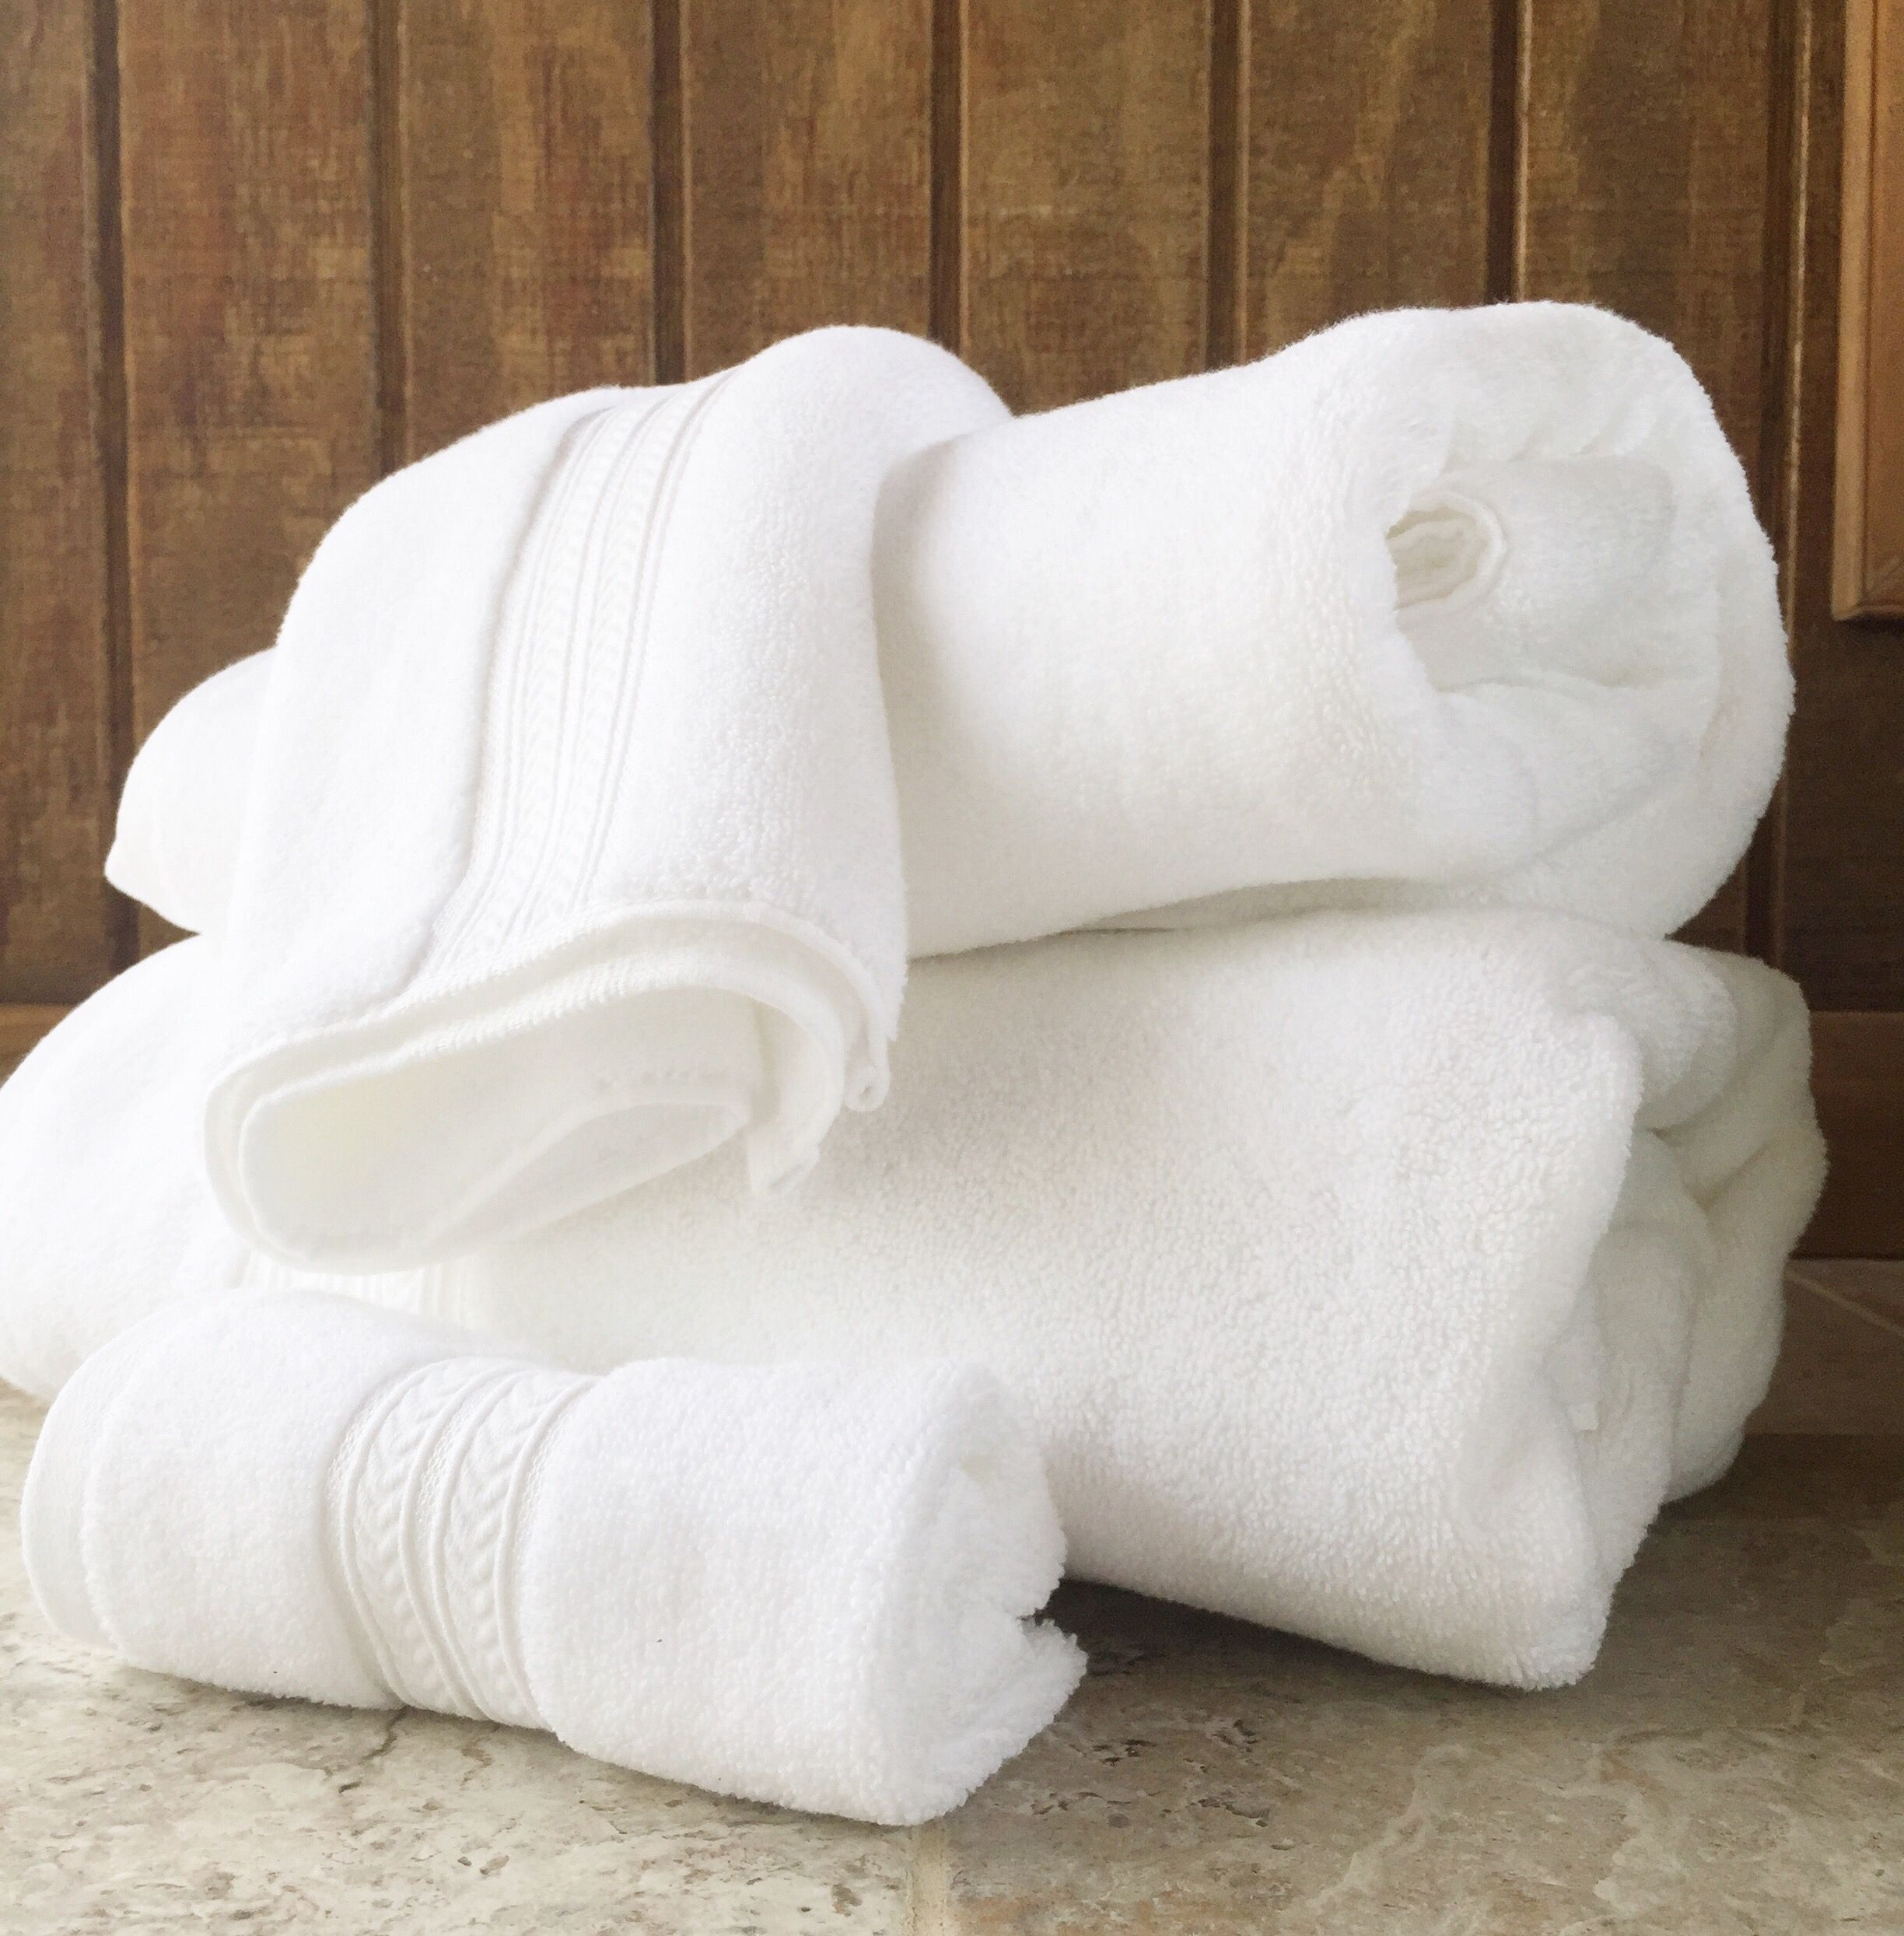 Home Plush Bath Towel Plush Towel